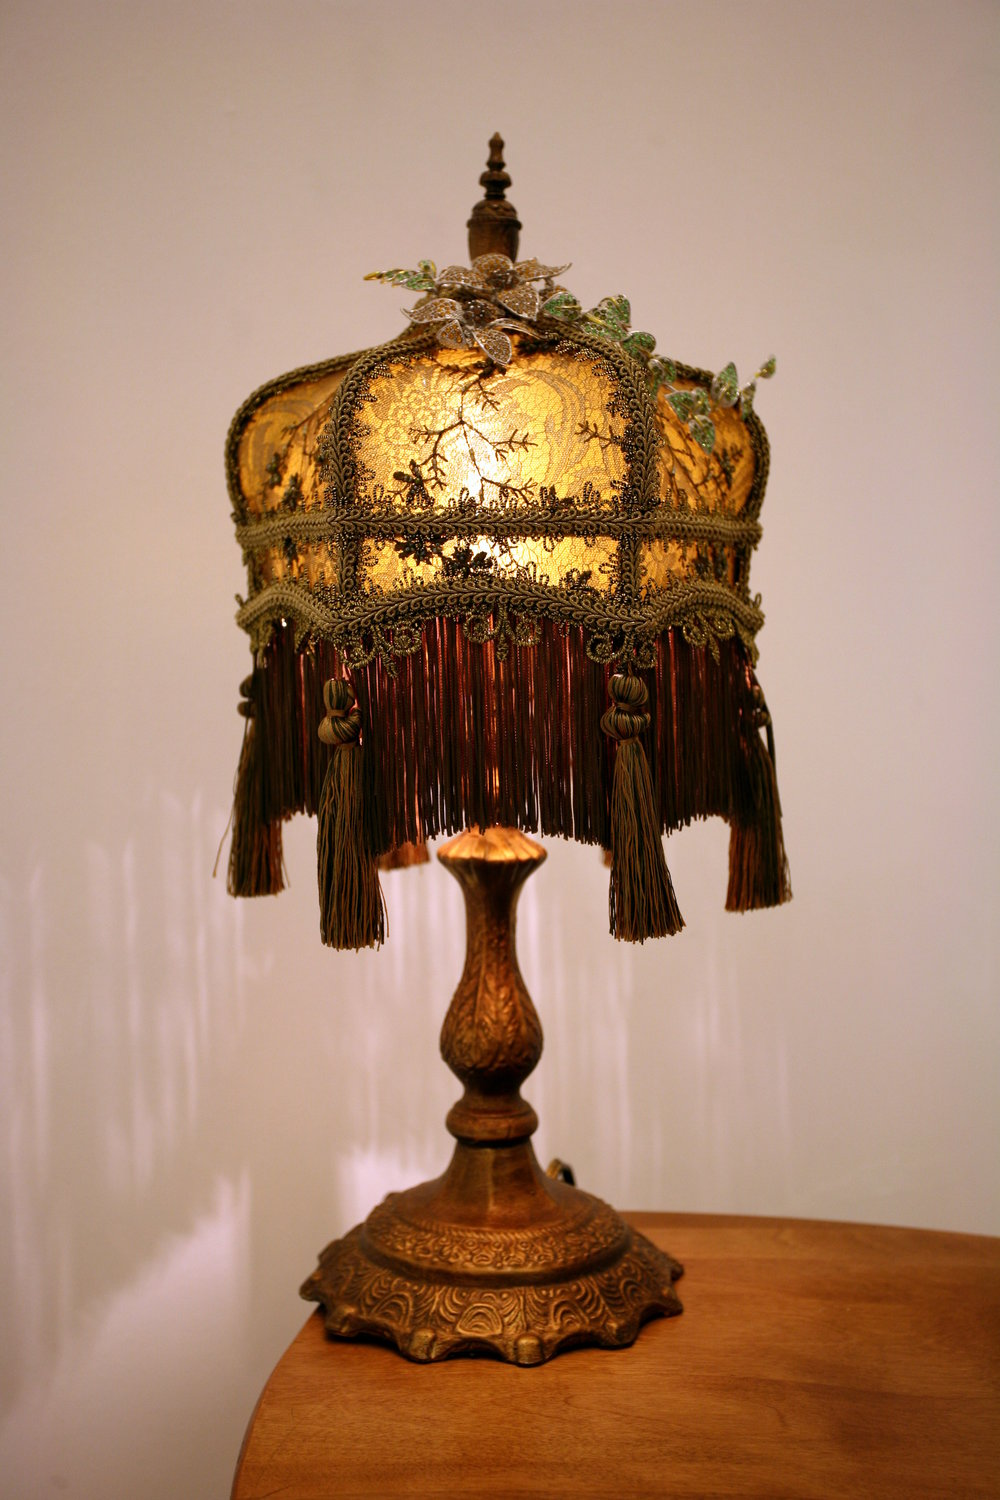 Lamp with custom lamp shade